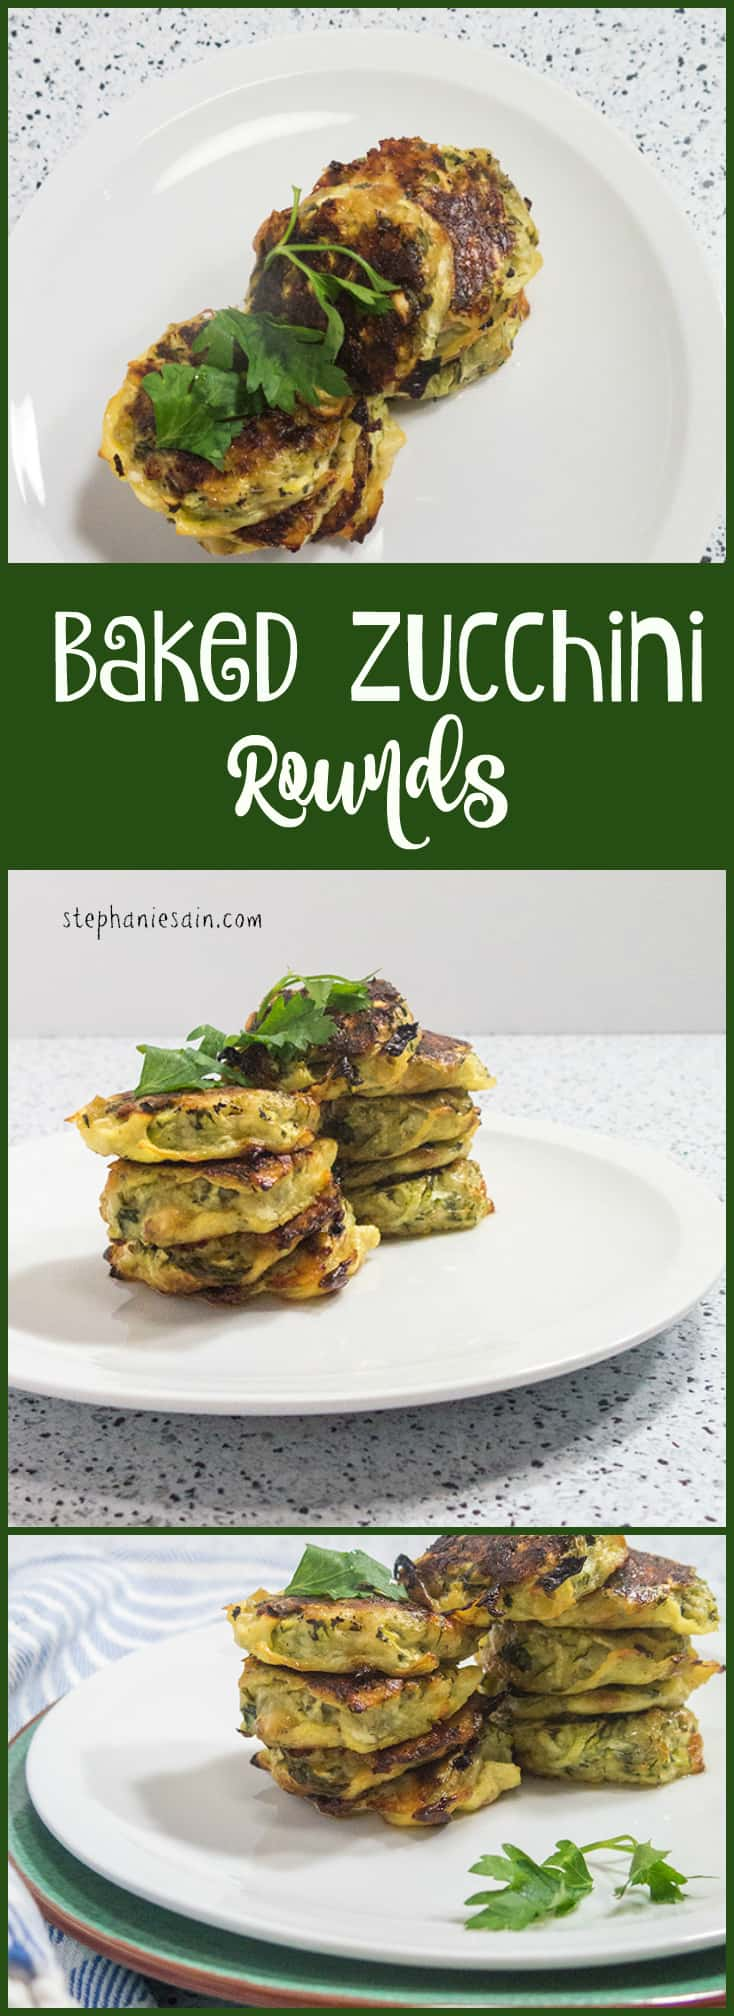 Baked Zucchini Rounds are a tasty, healthy little bite sized treat perfect with almost anything. Also great served as an appetizer. Vegetarian and Gluten Free.